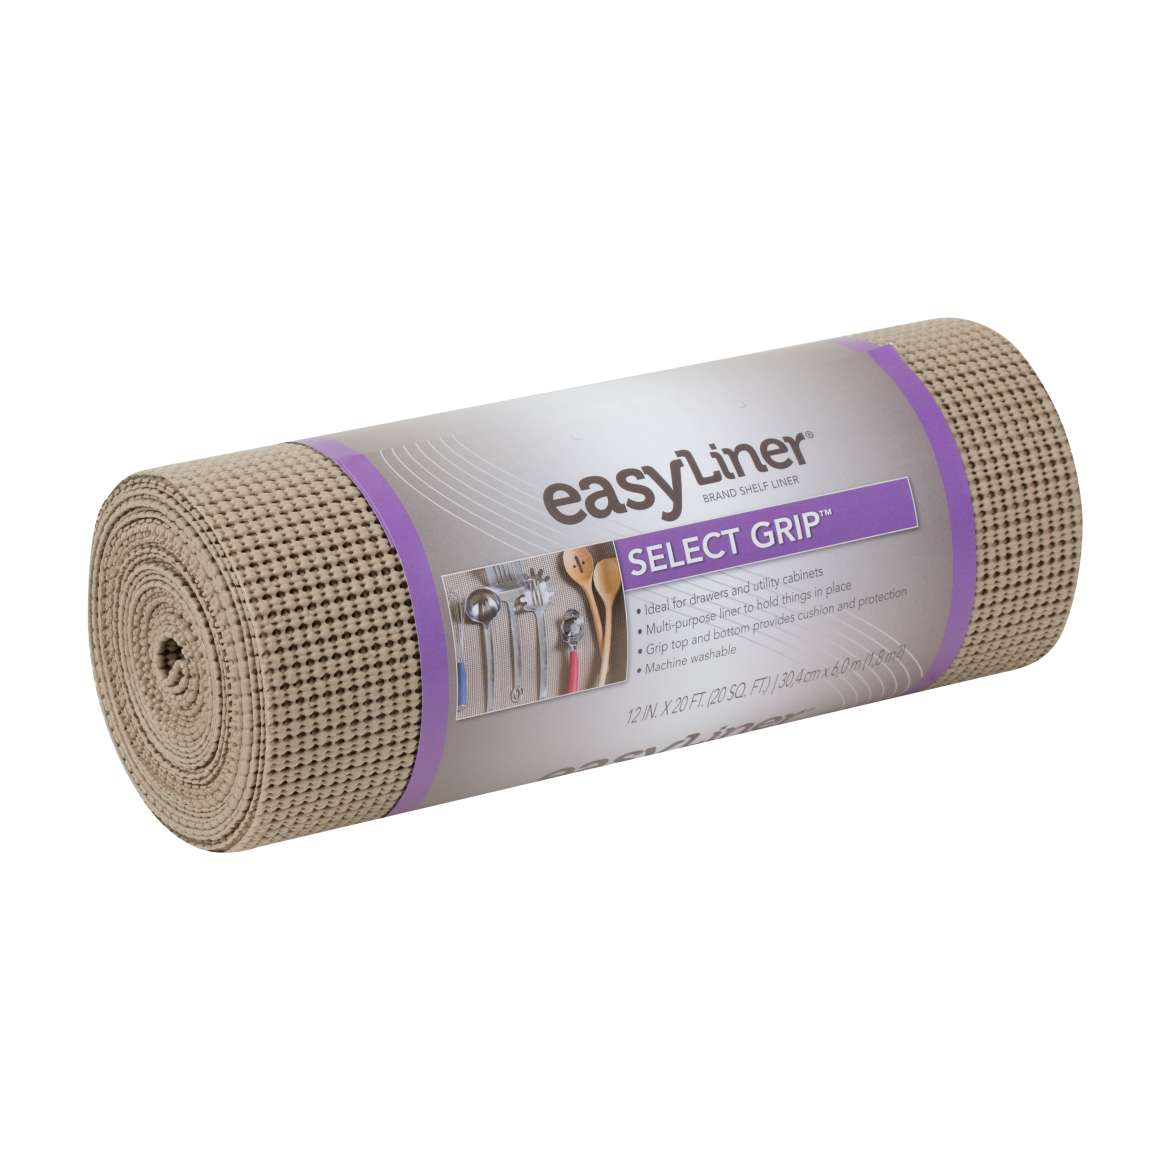 Select Grip™ Easy Liner® Brand Shelf Liner - Brownstone, 12 in. x 20 ft. Image